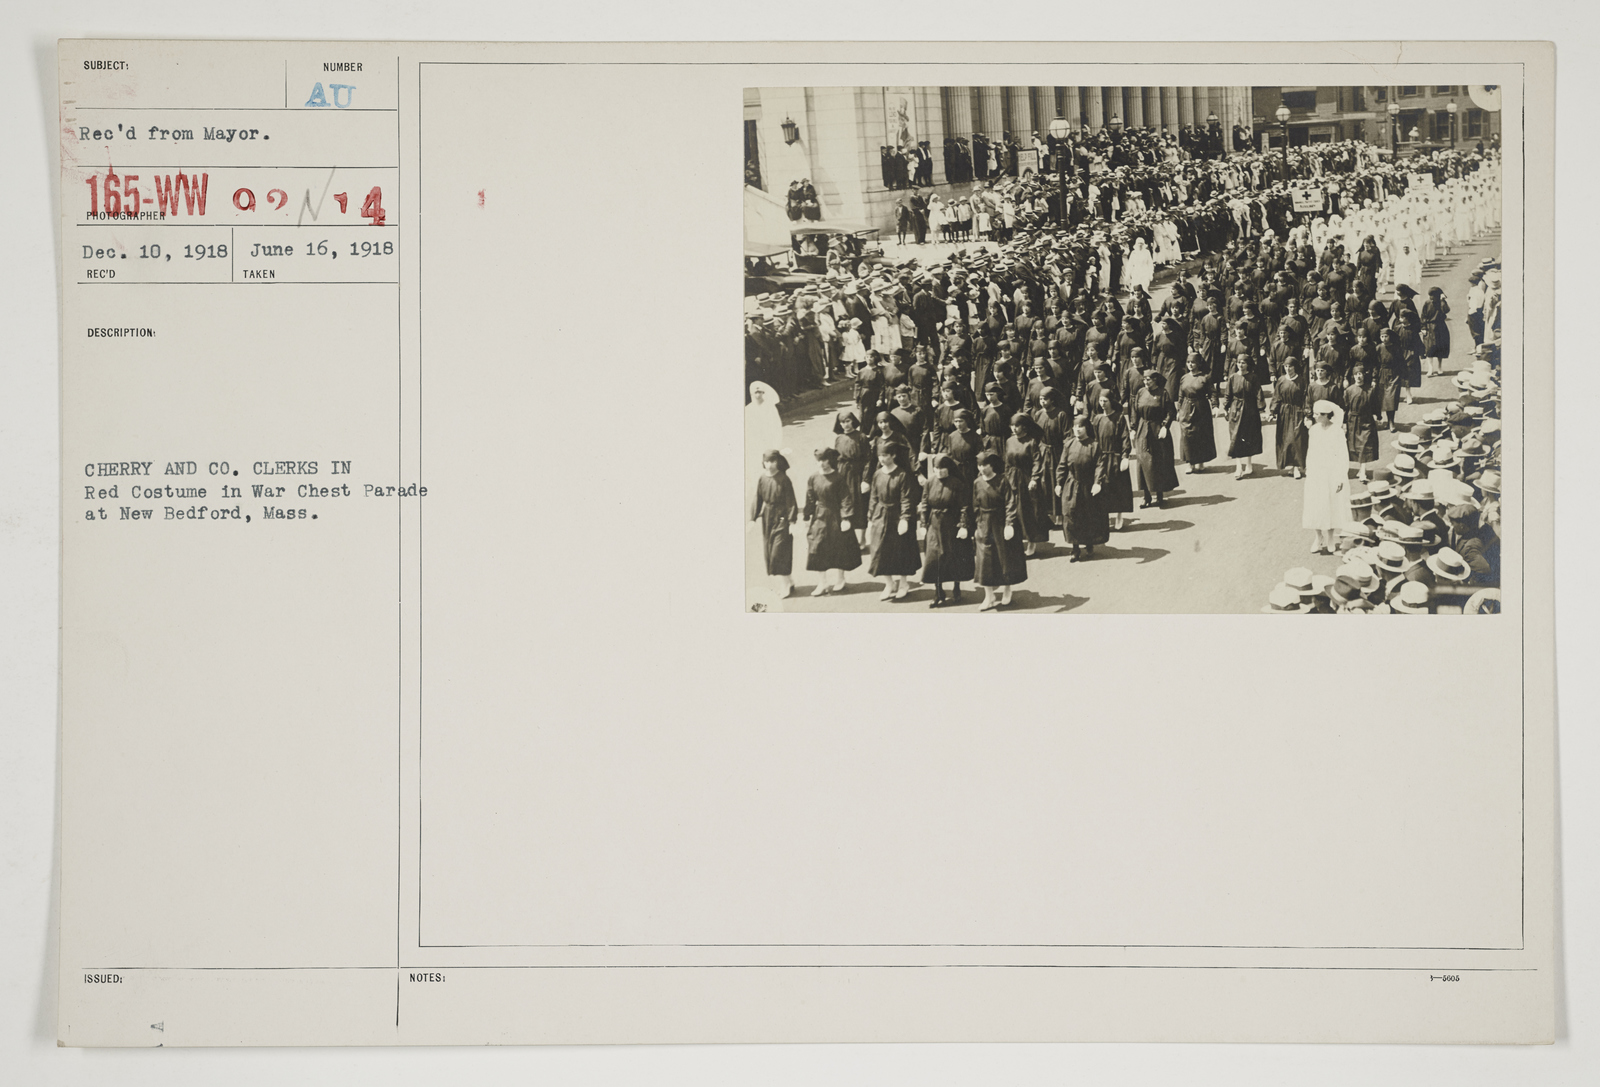 Ceremonies - Salutes and Parades - Massachusetts - Cherry and Co. clerks in Red Costume in War Chest Parade at New Bedford, Massachusetts